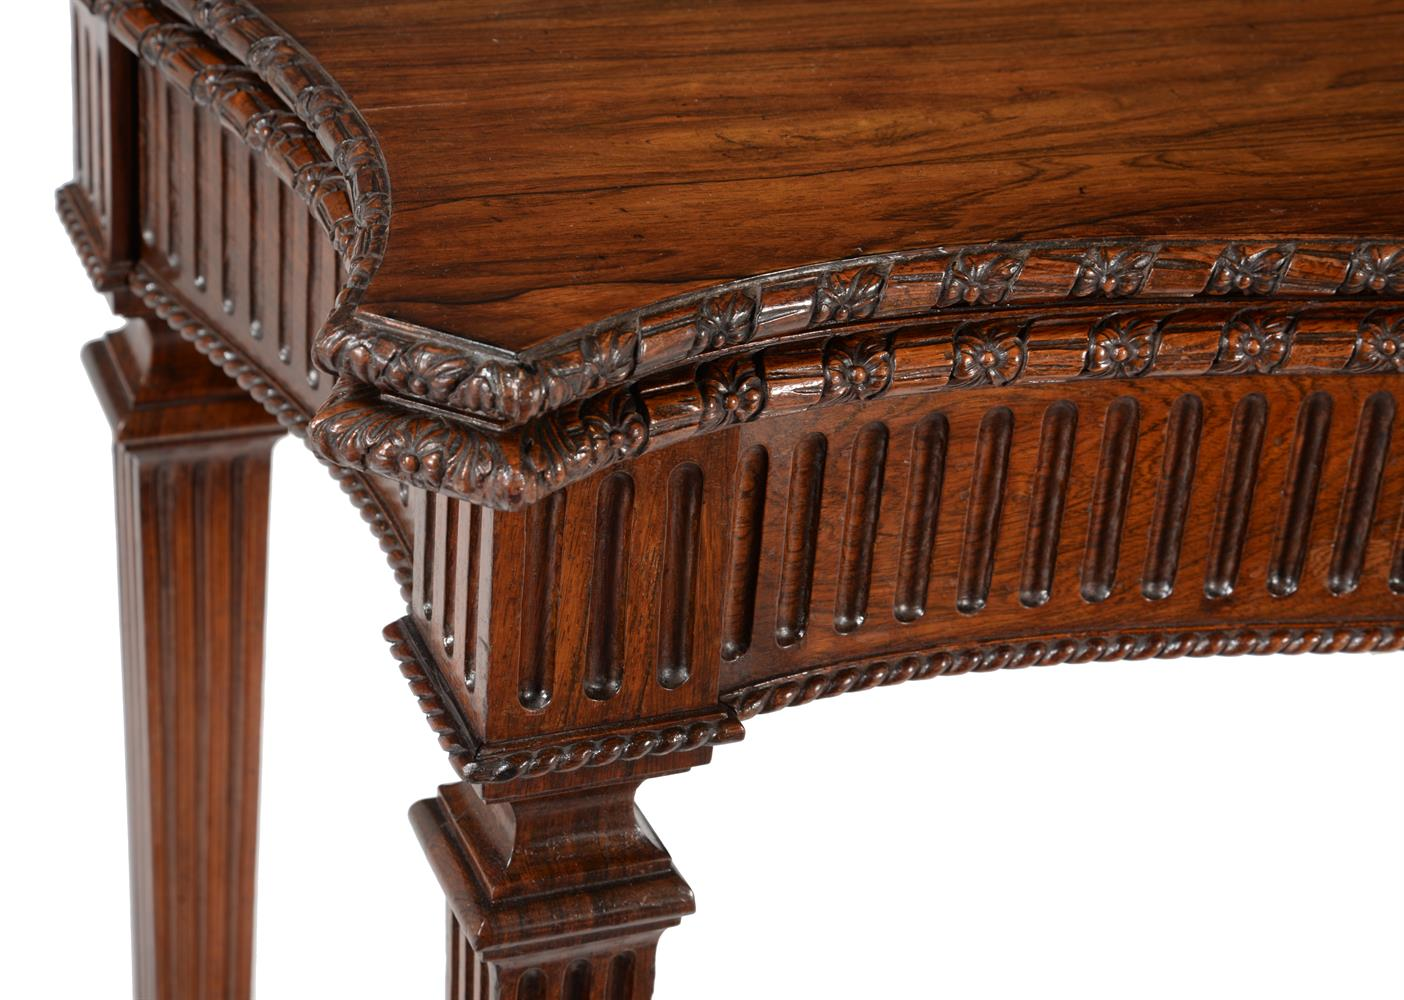 Y A GEORGE IV ROSEWOOD SERPENTINE FOLDING CARD TABLE, CIRCA 1825 - Image 3 of 5